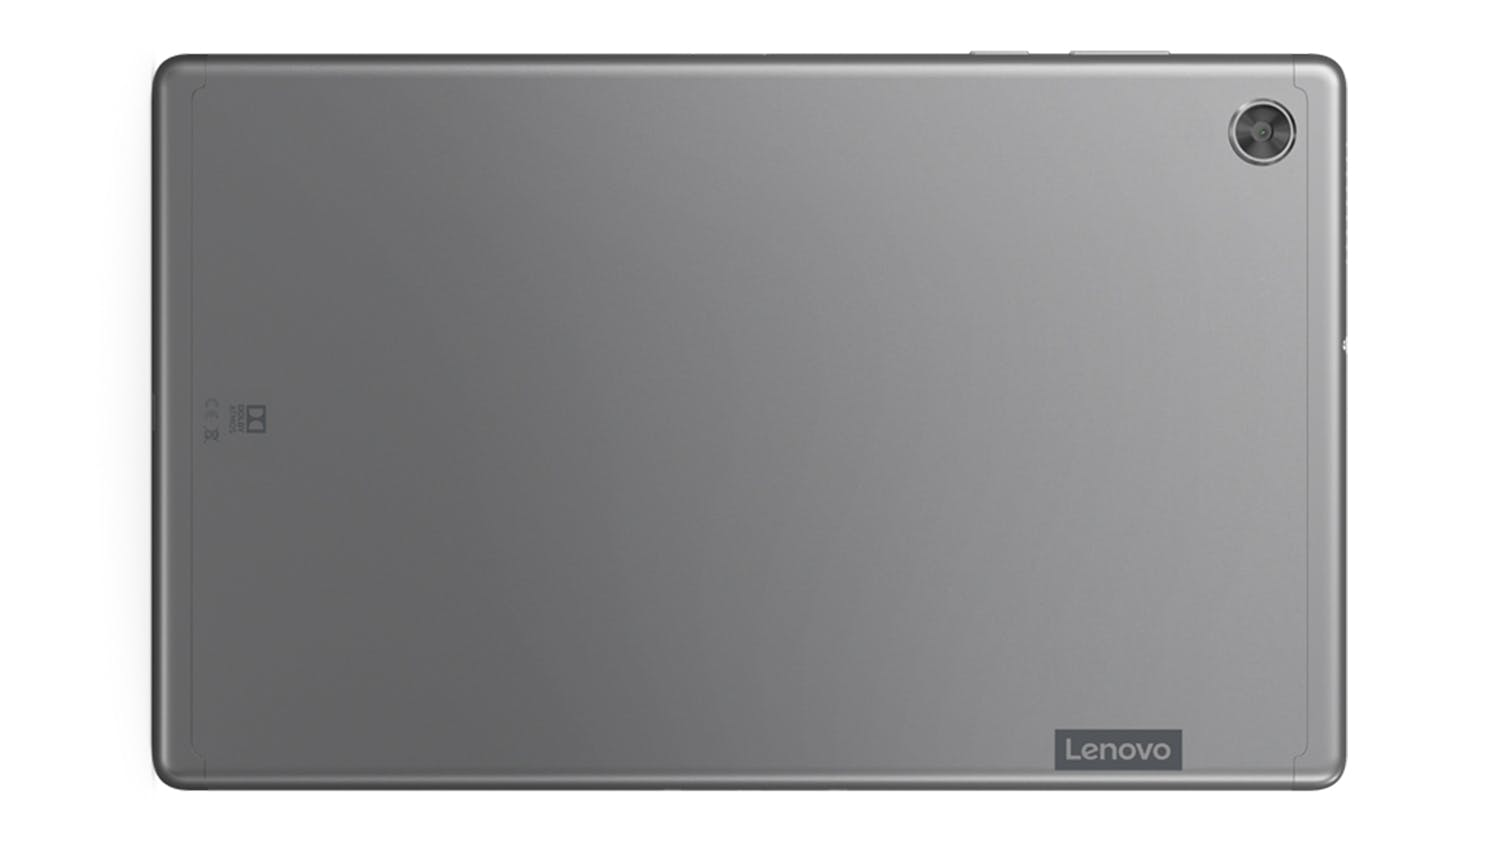 "Lenovo Tab M10 HD (2nd Gen) 10.1"" Tablet - Iron Grey"